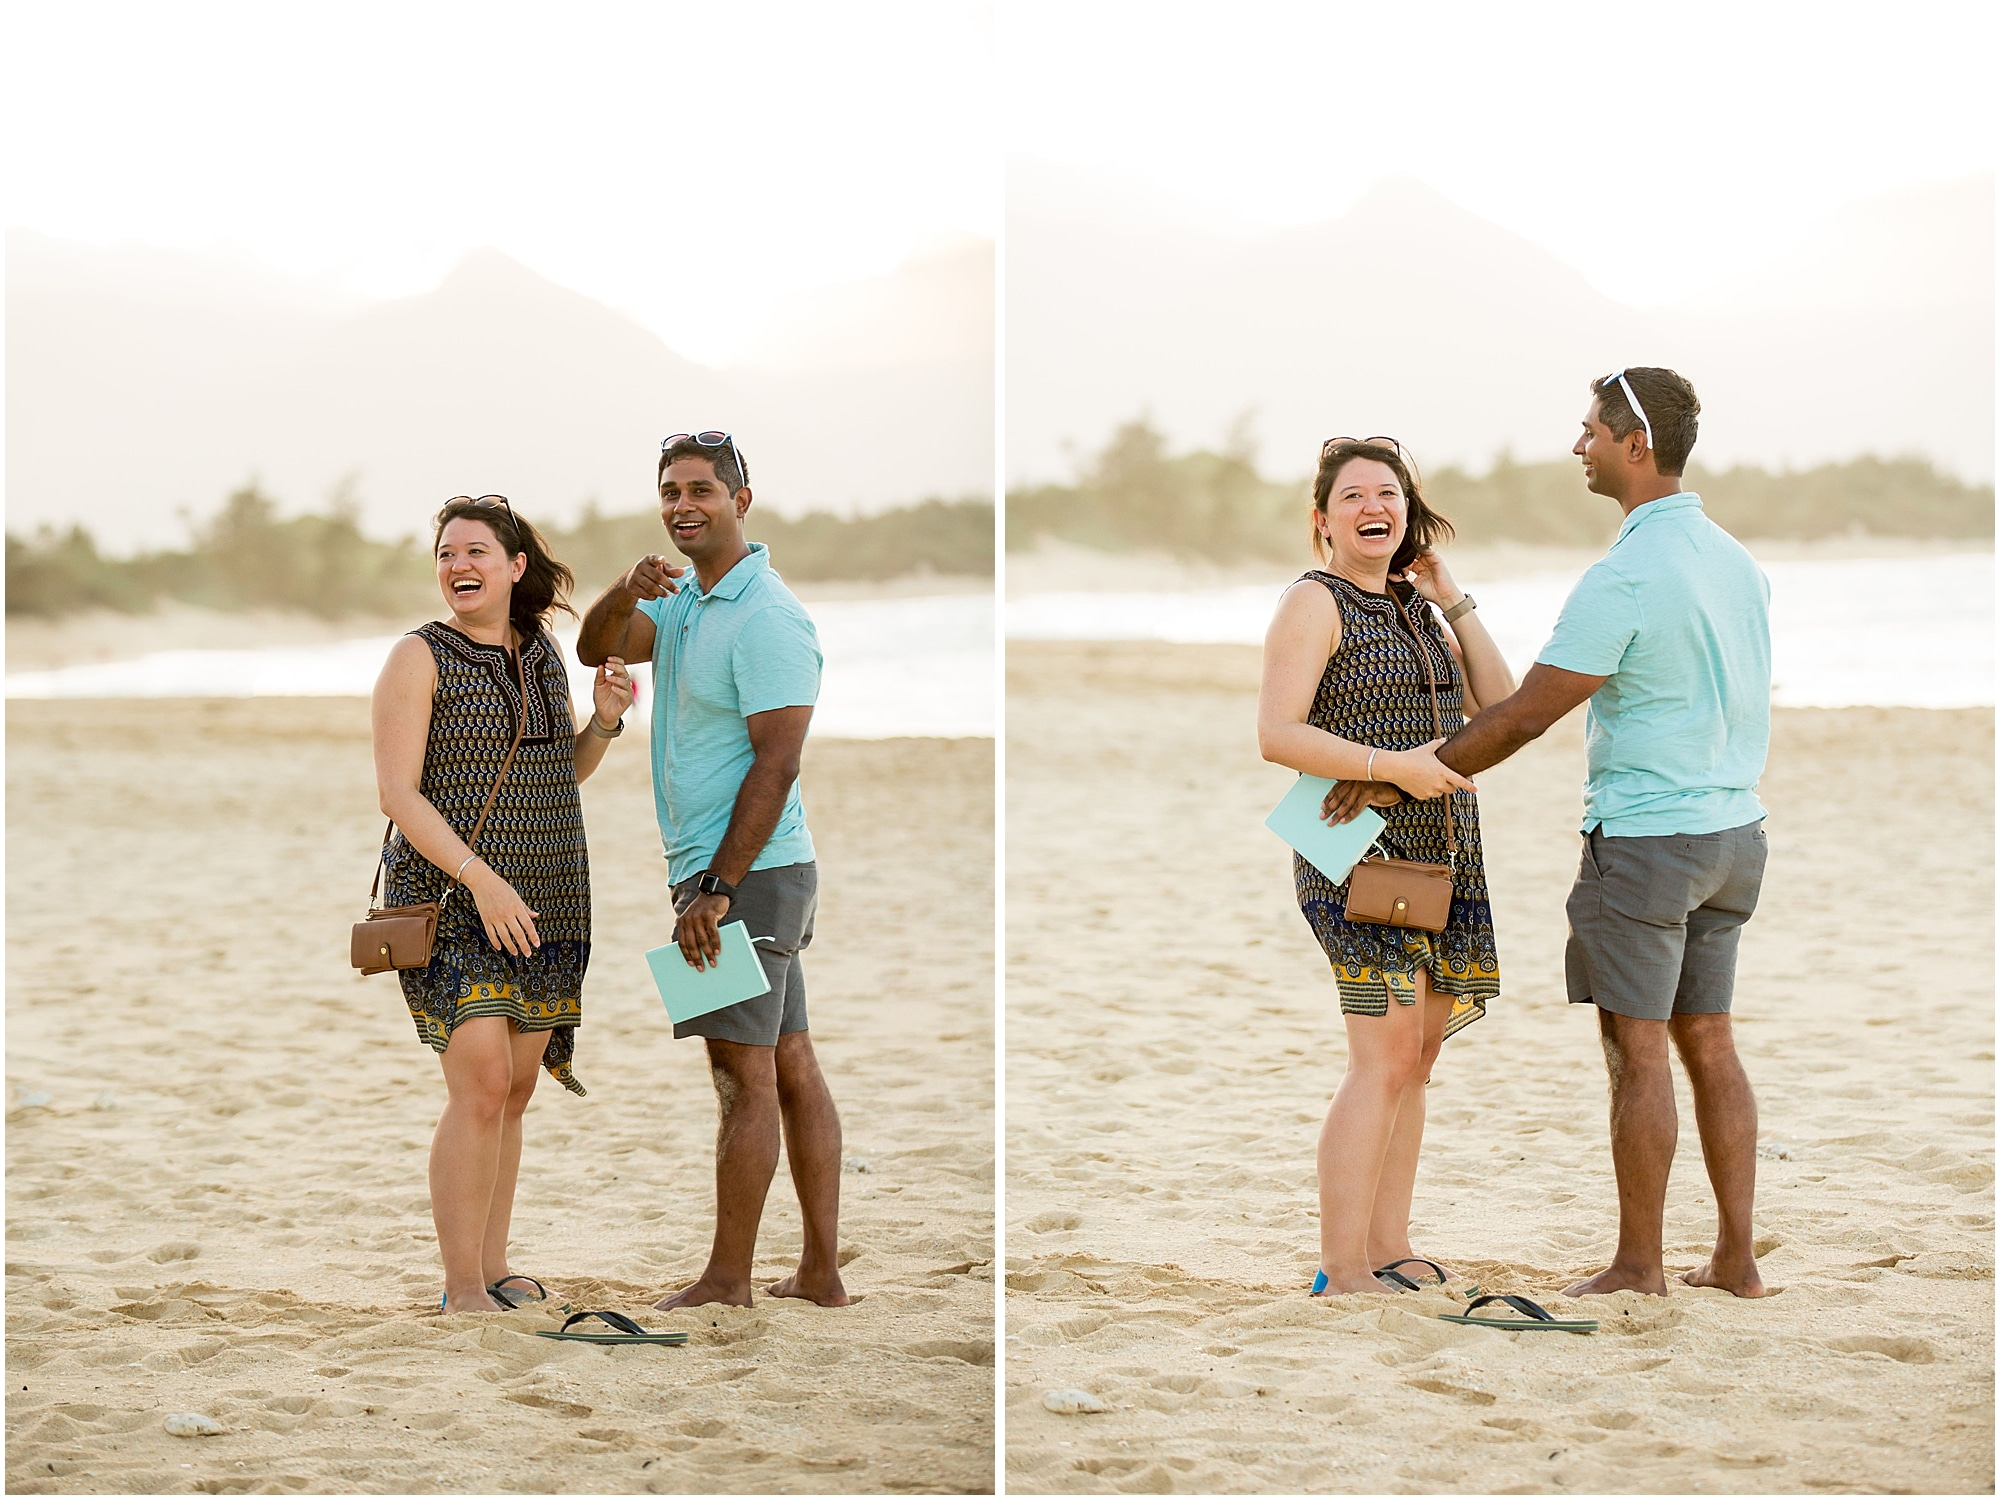 Brittney realizes that the beach library was set up for her proposal